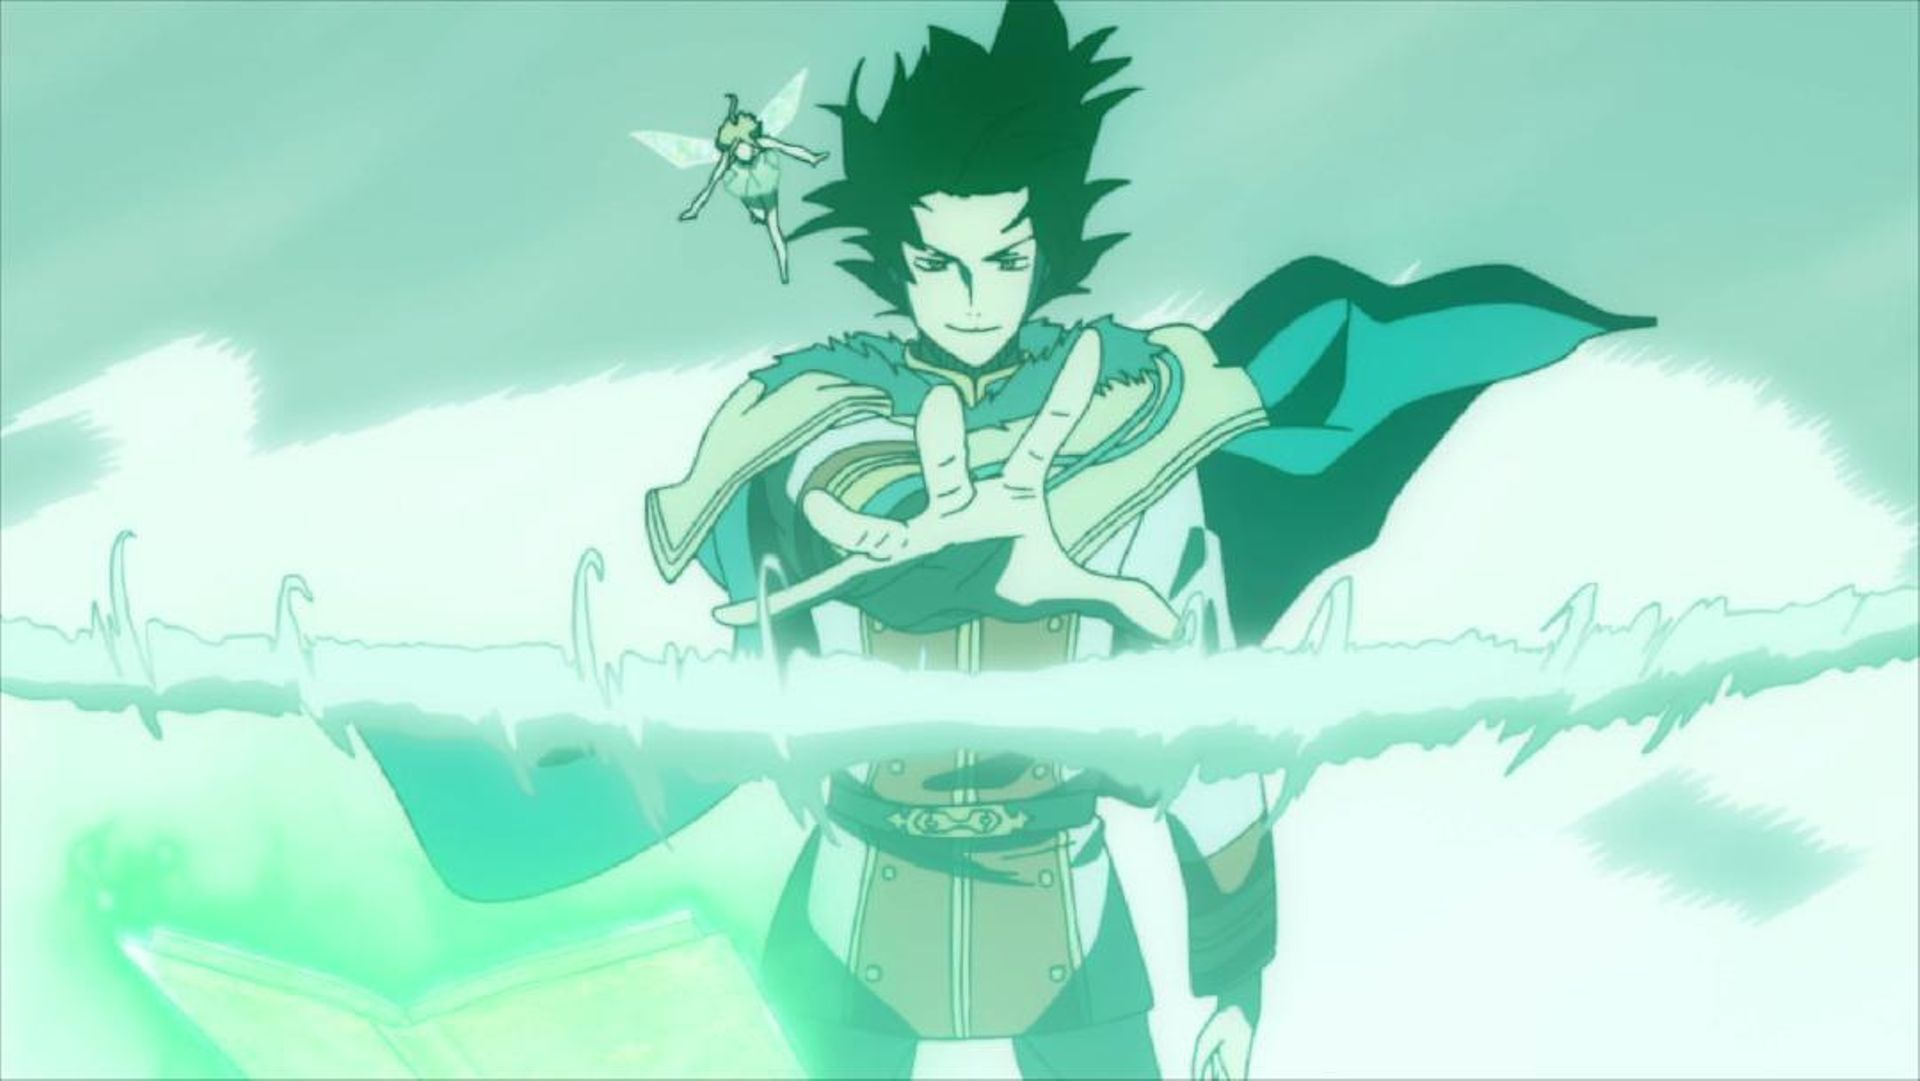 Julius Novachrono S2 Ep42 Black Clover But in fights like julius novachrono vs patry, the series' definition of absolute power isn't as attainable yet, and strength itself becomes more of a mystery and less something that you nab just by believing in yourself a little harder. two new stars